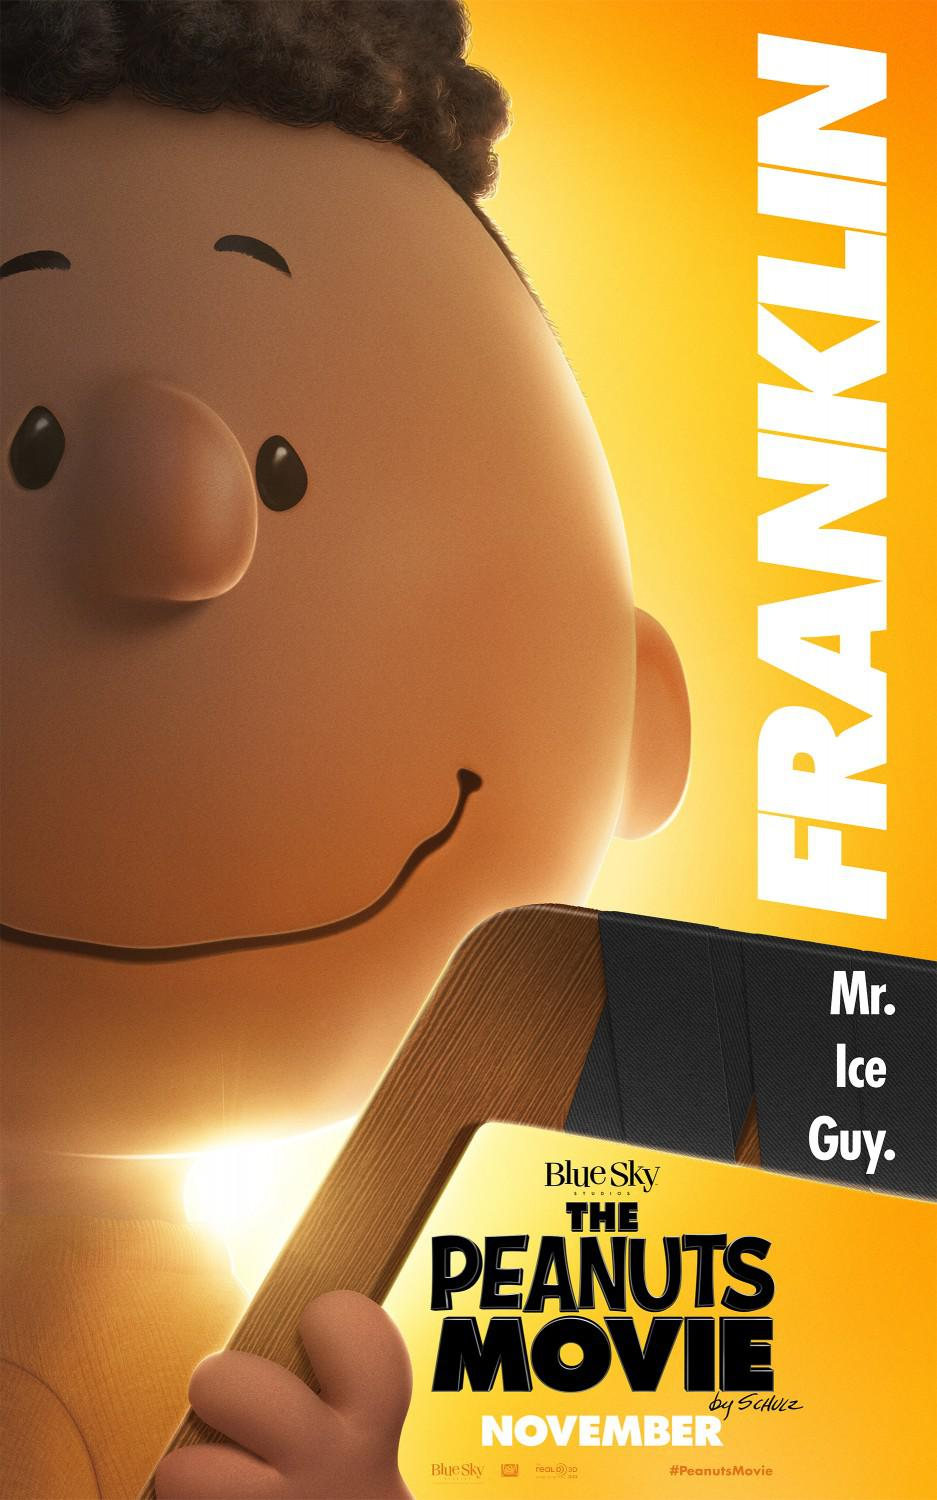 Snoopy and Charlie Brown the peanuts movie - Fracklin